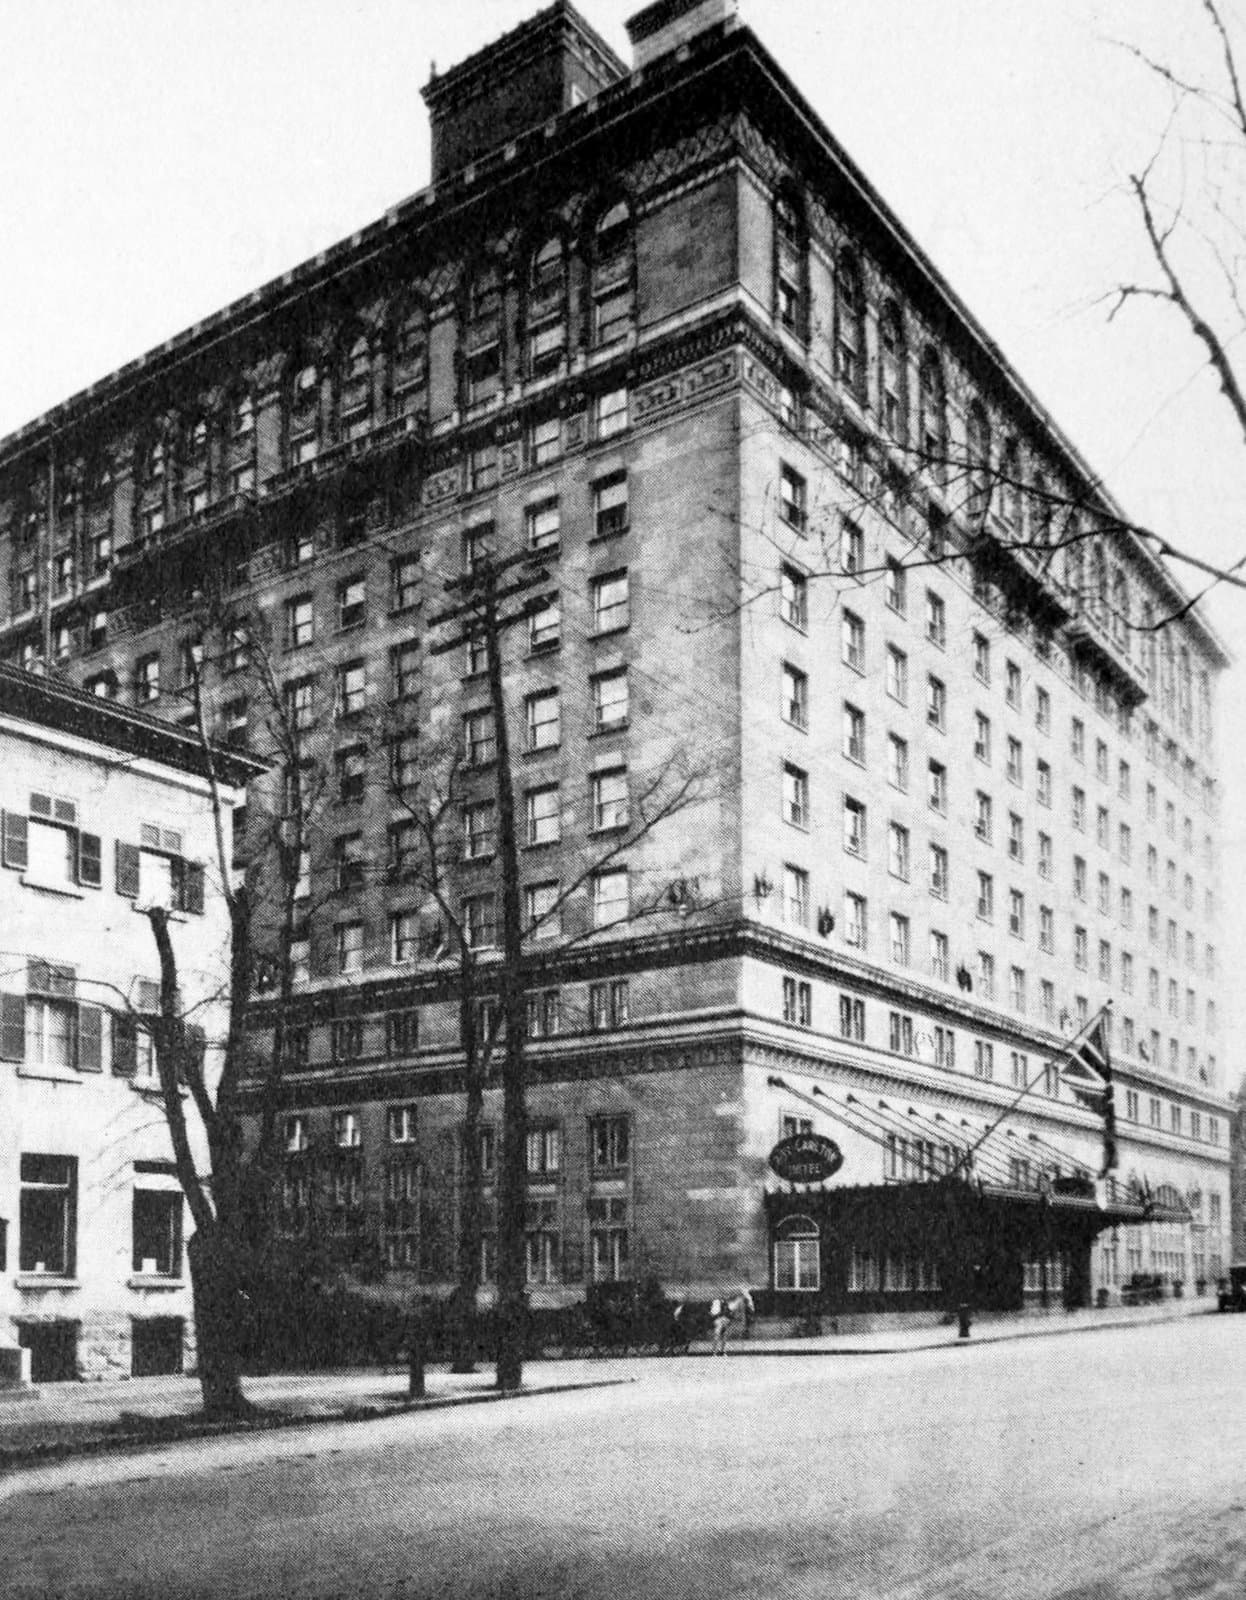 Building exterior - Old Ritz hotel in New York City